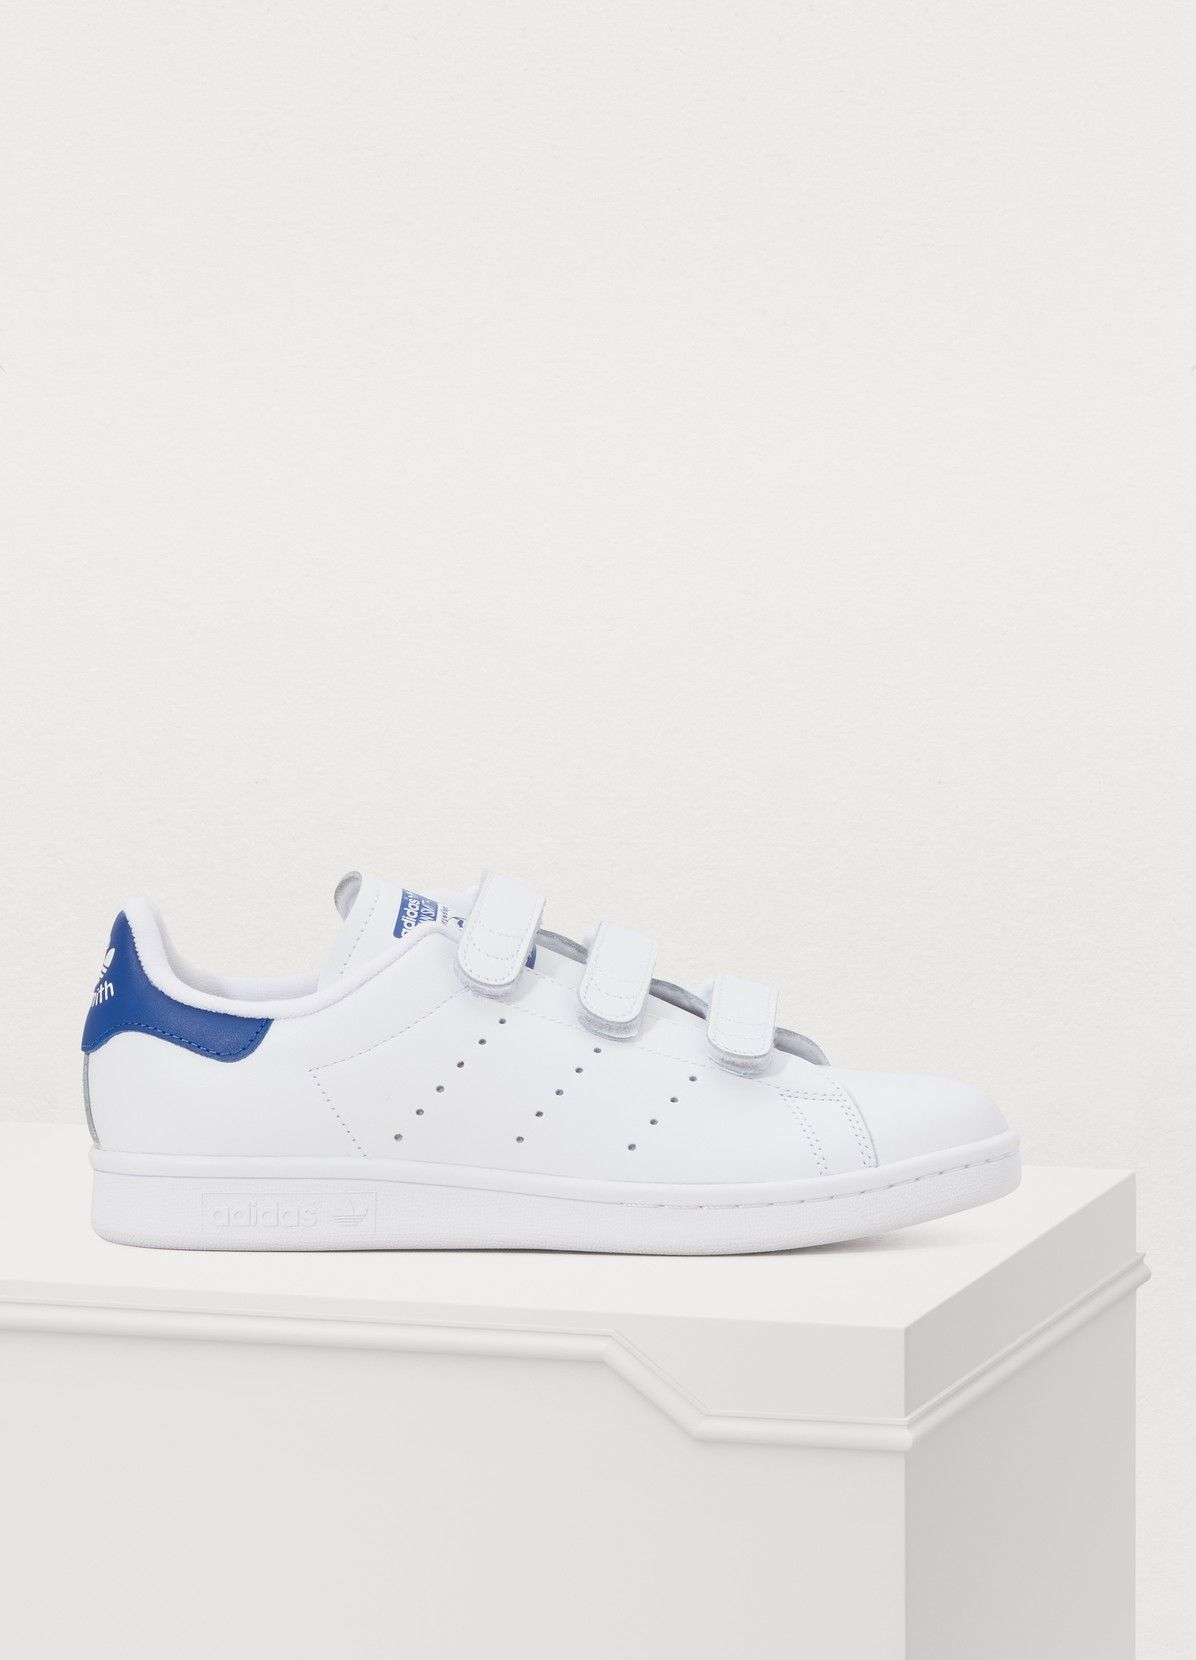 US size 8 | Adidas sneakers, Adidas originals stan smith ...